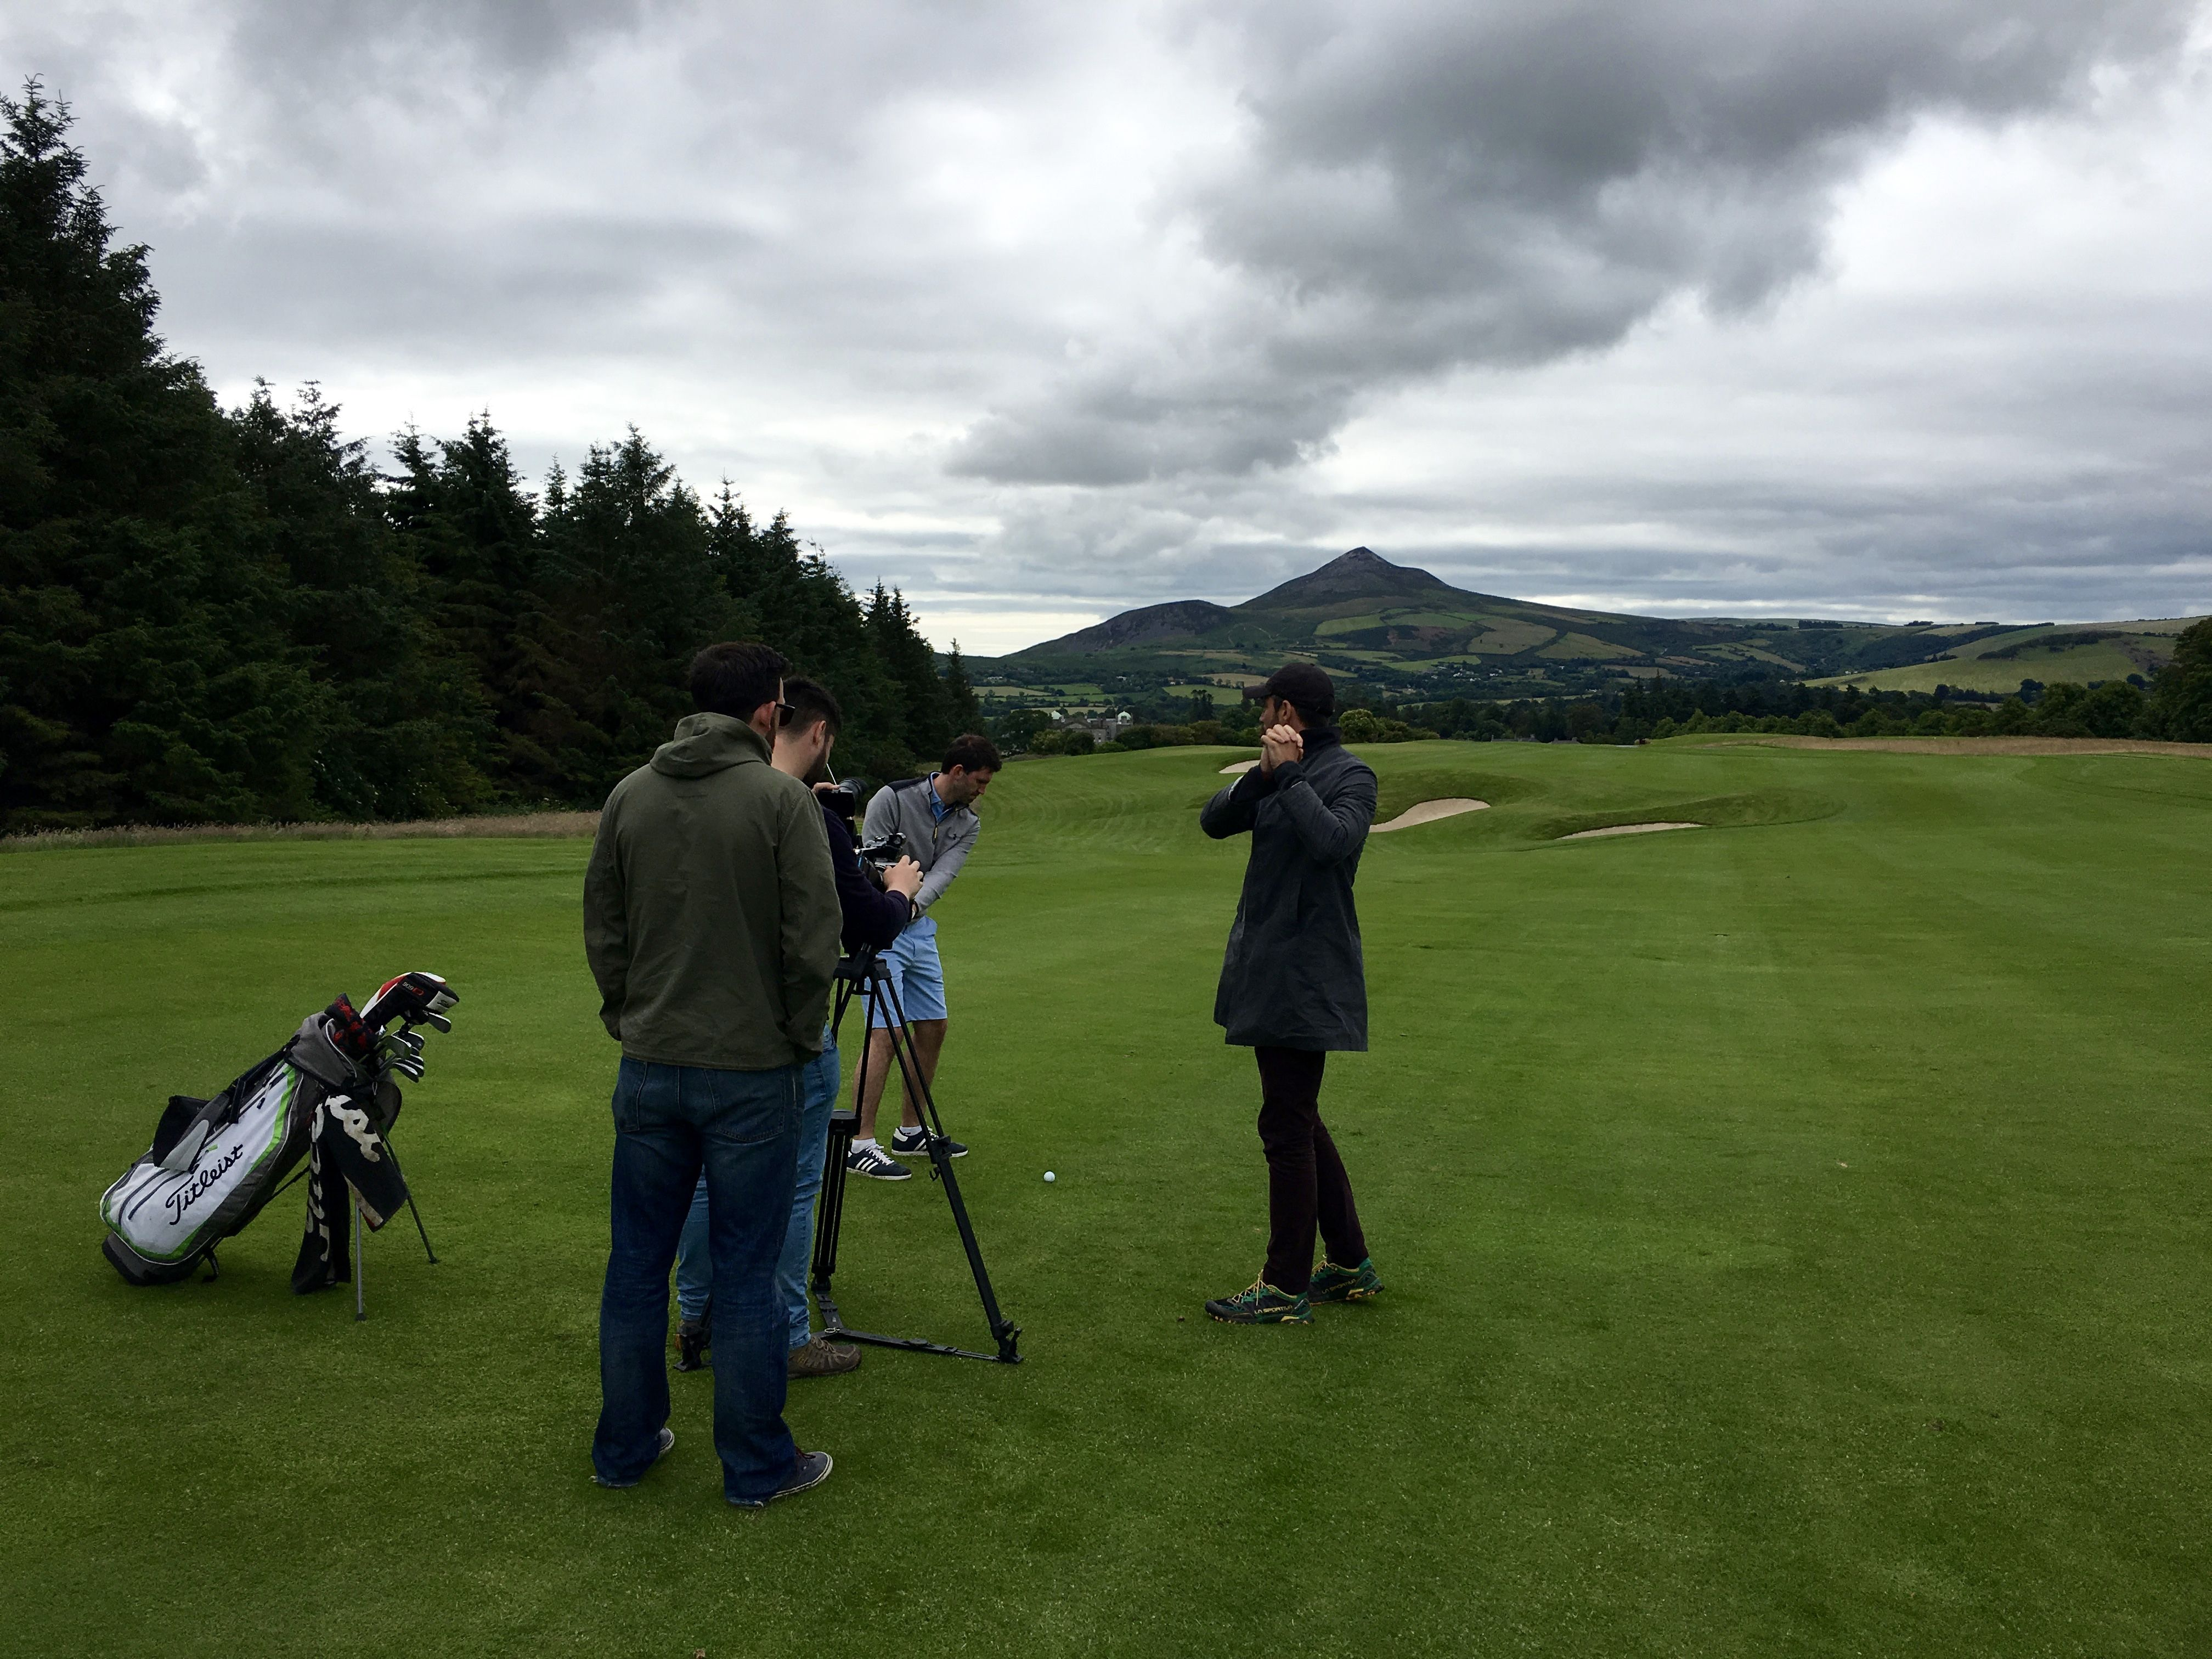 Filming today at the stunning Powerscourt Golf Club with a